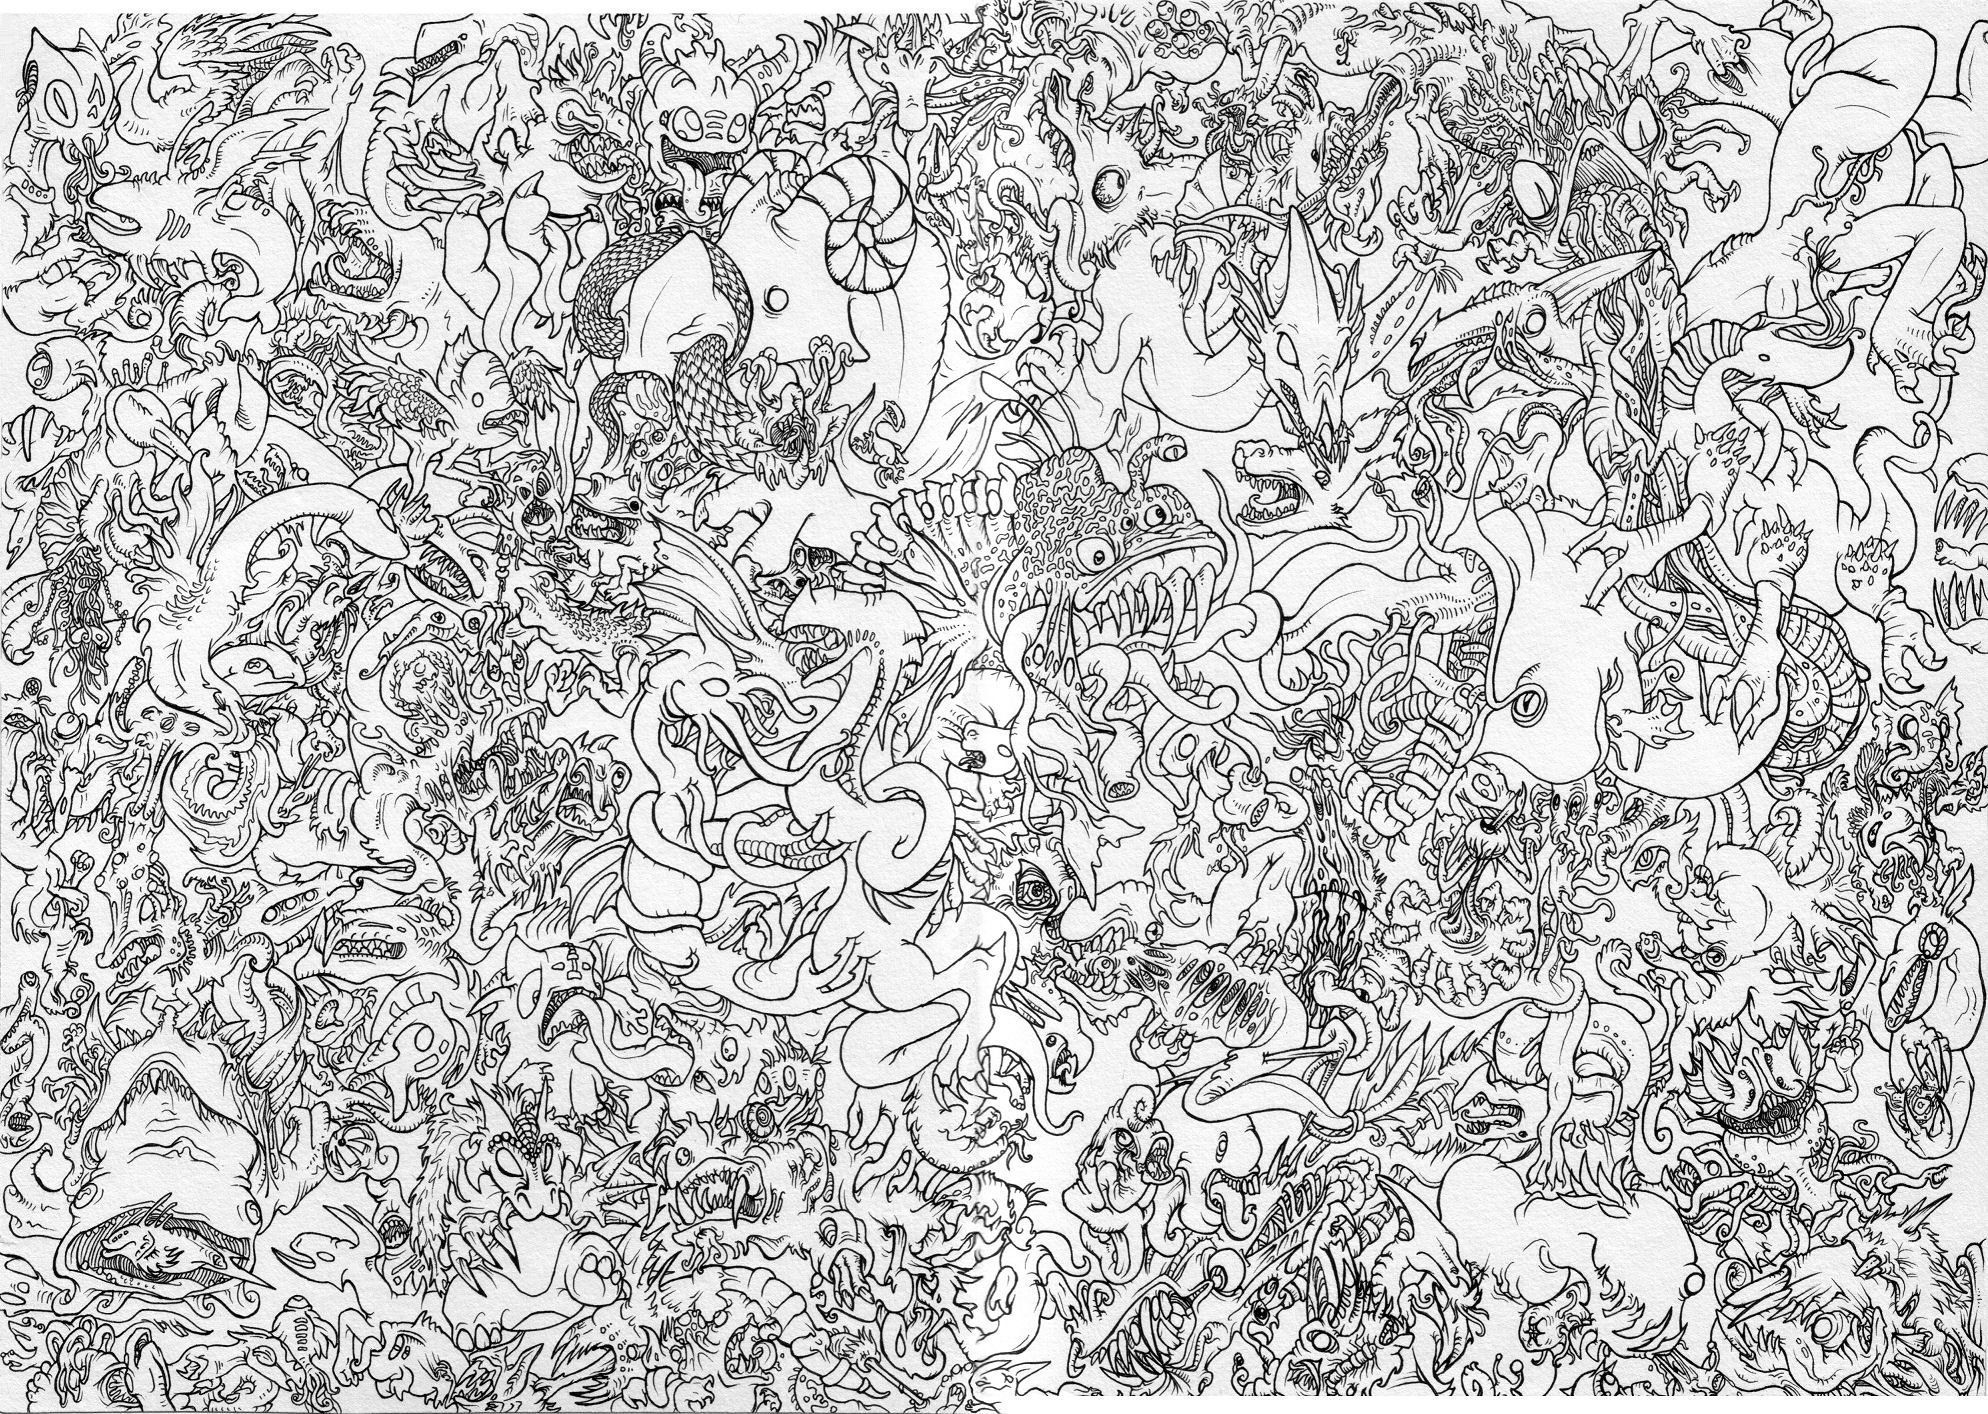 http://www.wallshark.com/wp-content/uploads/2013/02/China-Dragons-Black-And-White-Paper-Pattern.jpg